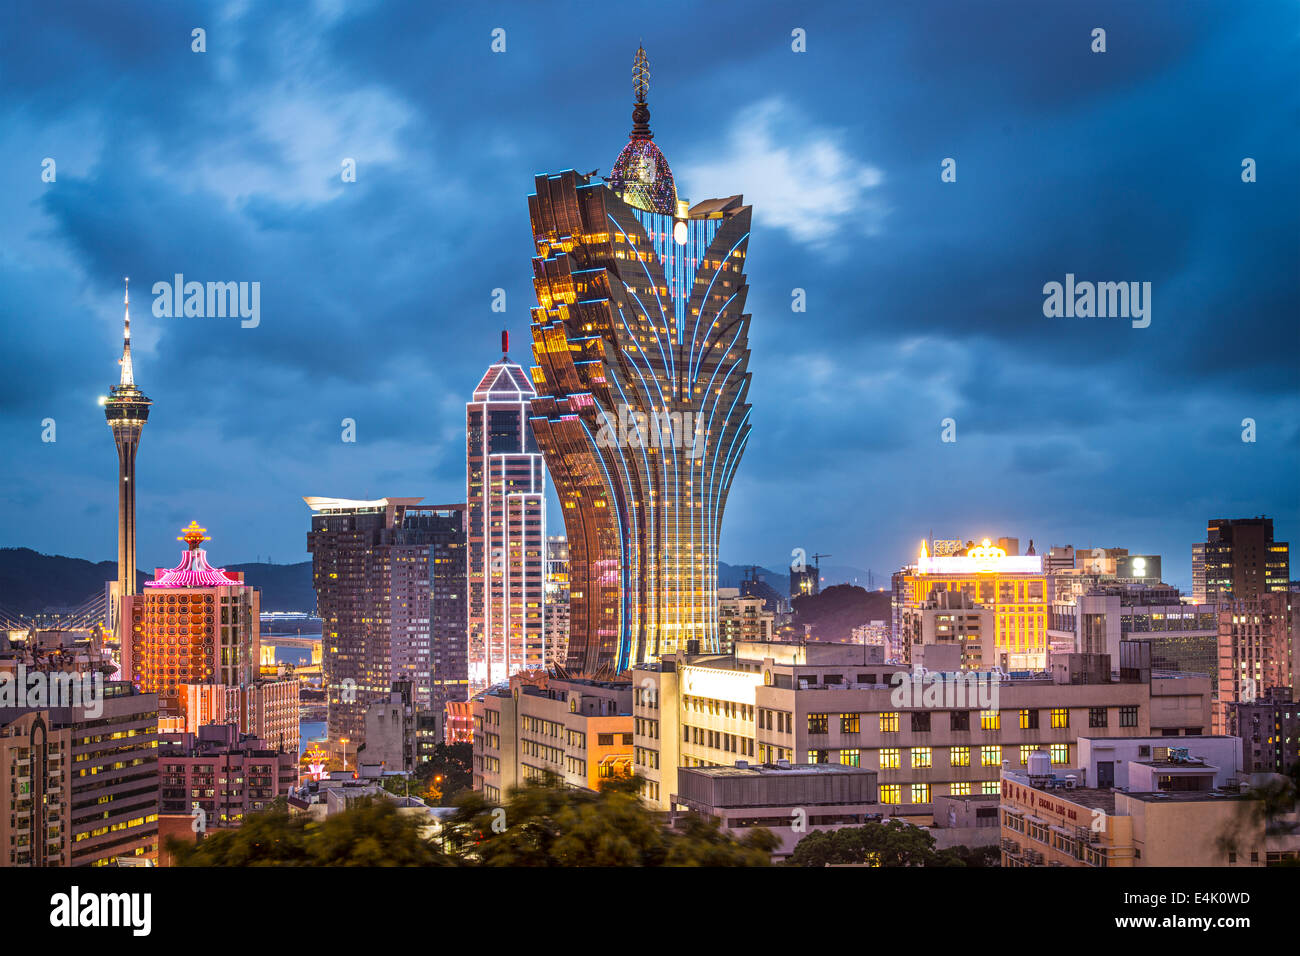 Macau, China city skyline Stock Photo: 71717897